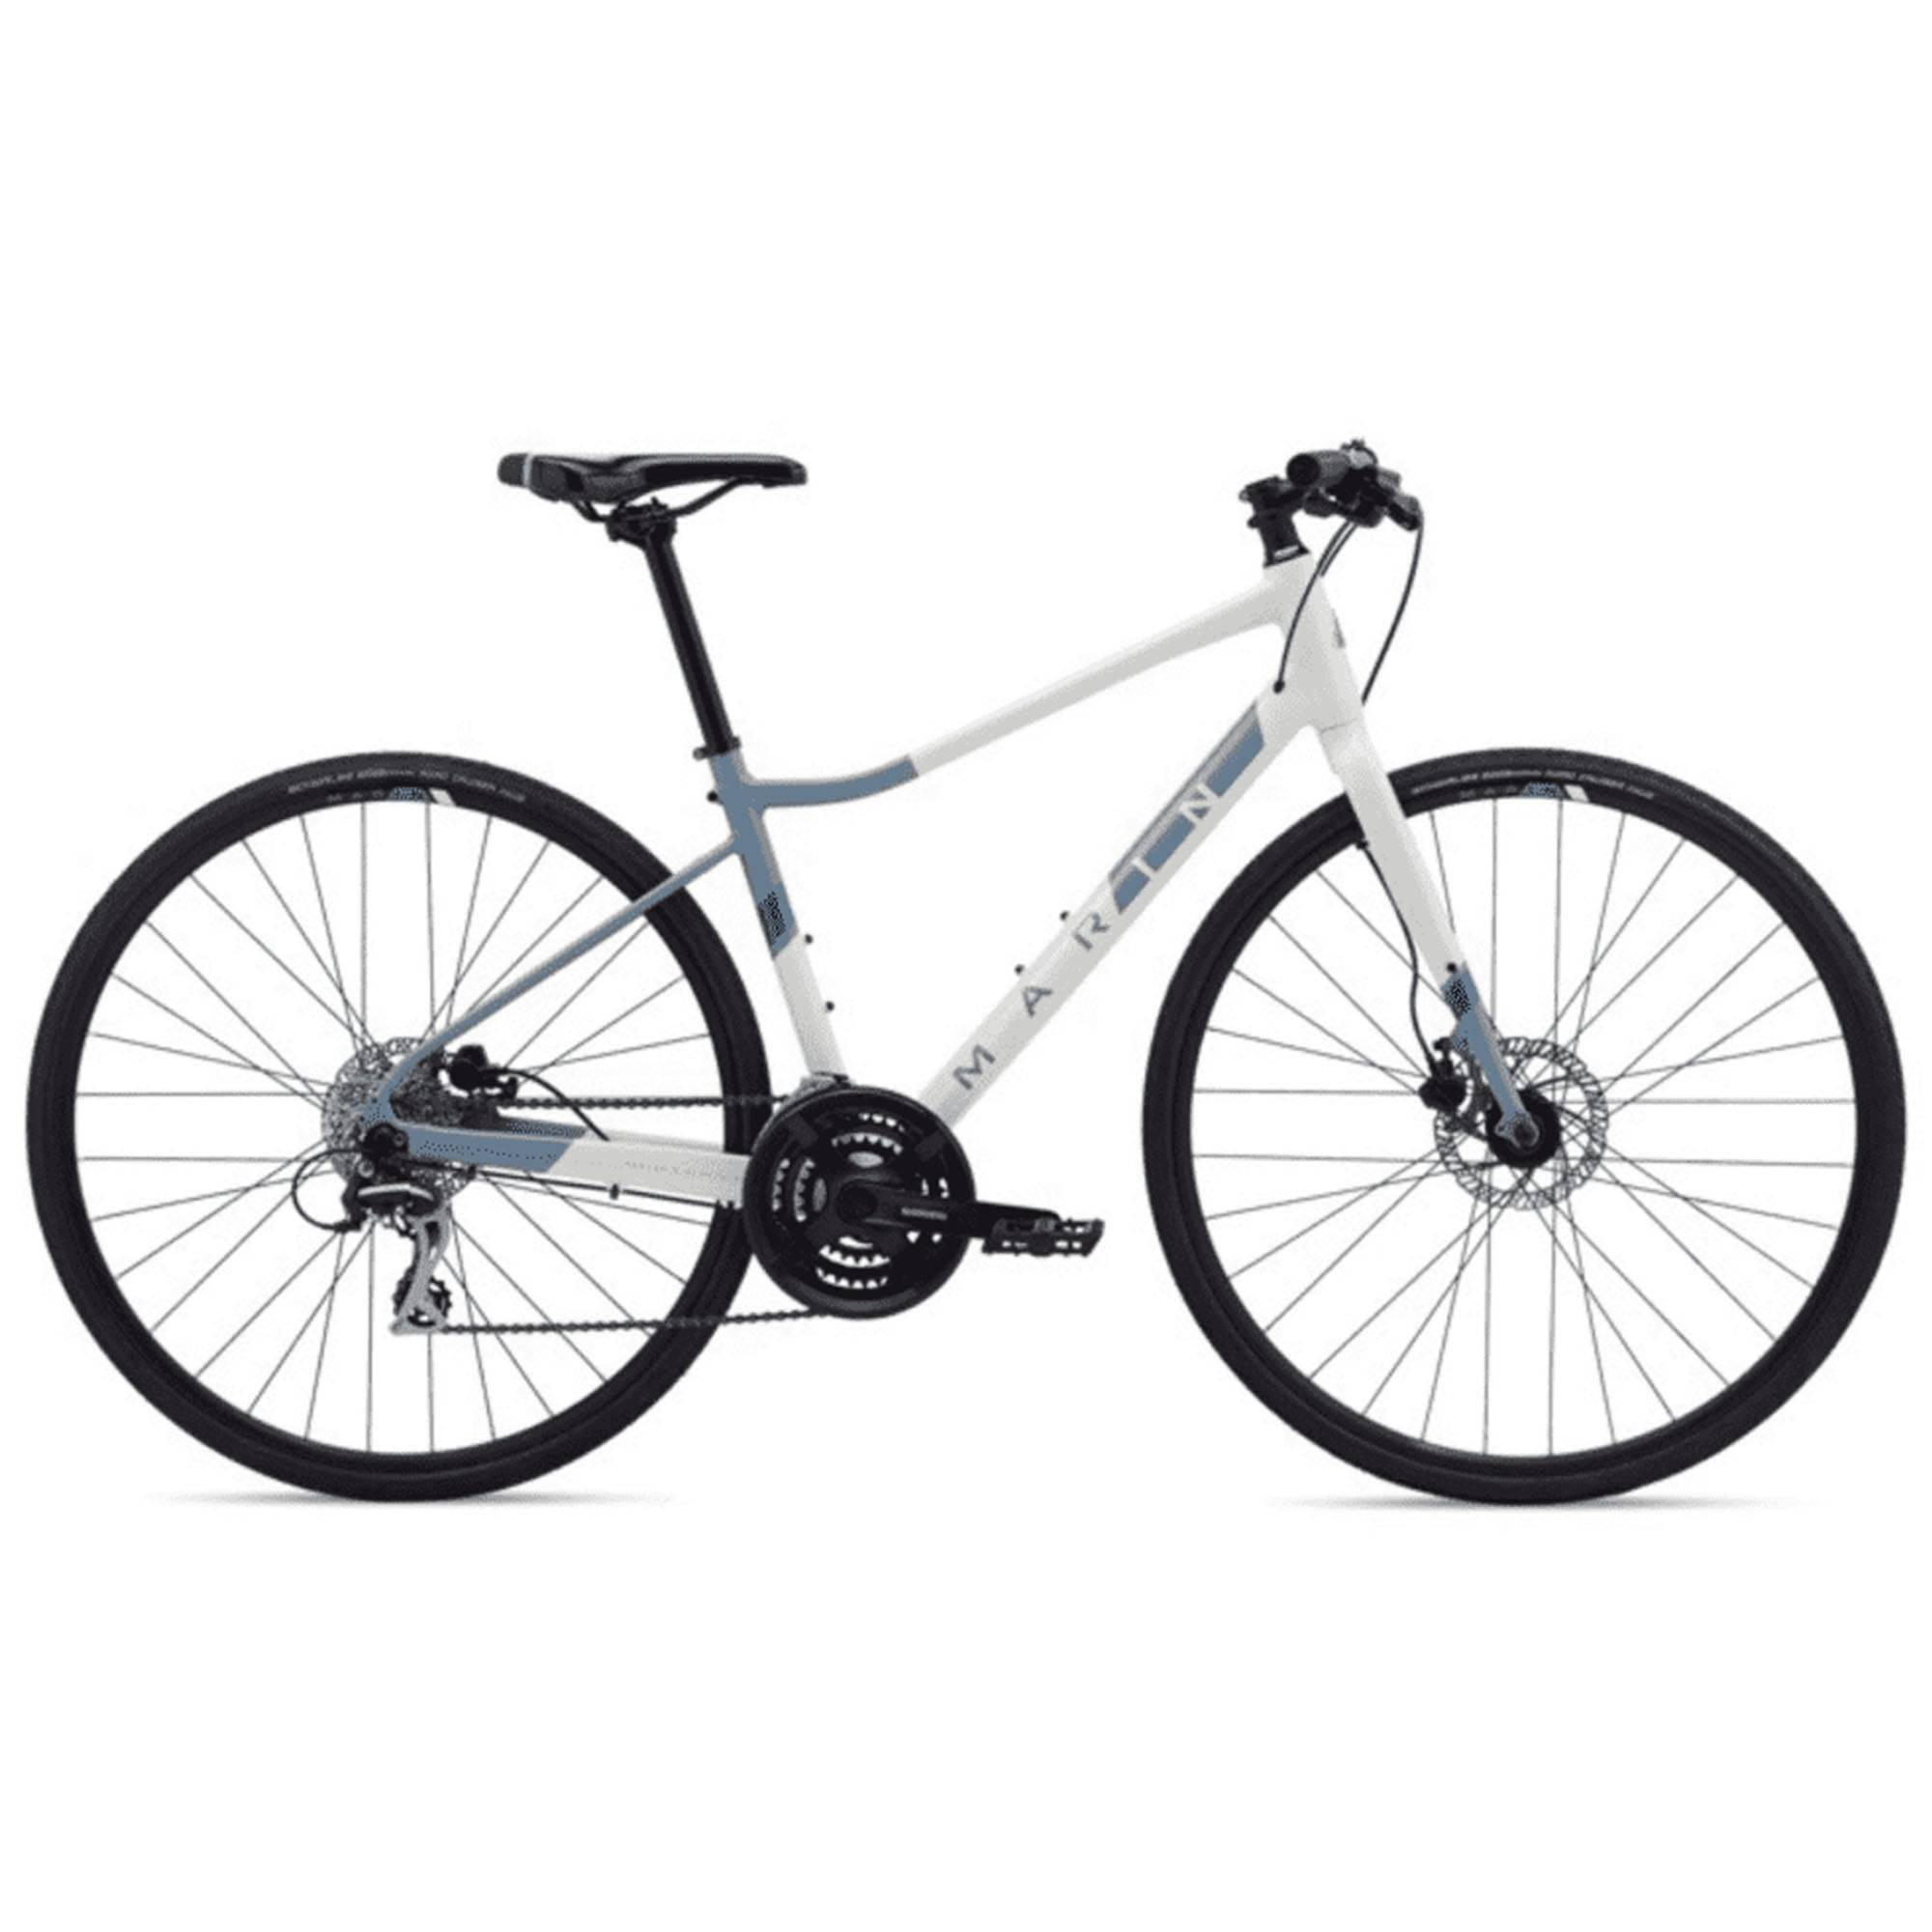 Marin Women's Terra Linda 2 Hybrid Bike '20  - Gloss White/Ash Blue/Deep Blue - Size: Medium